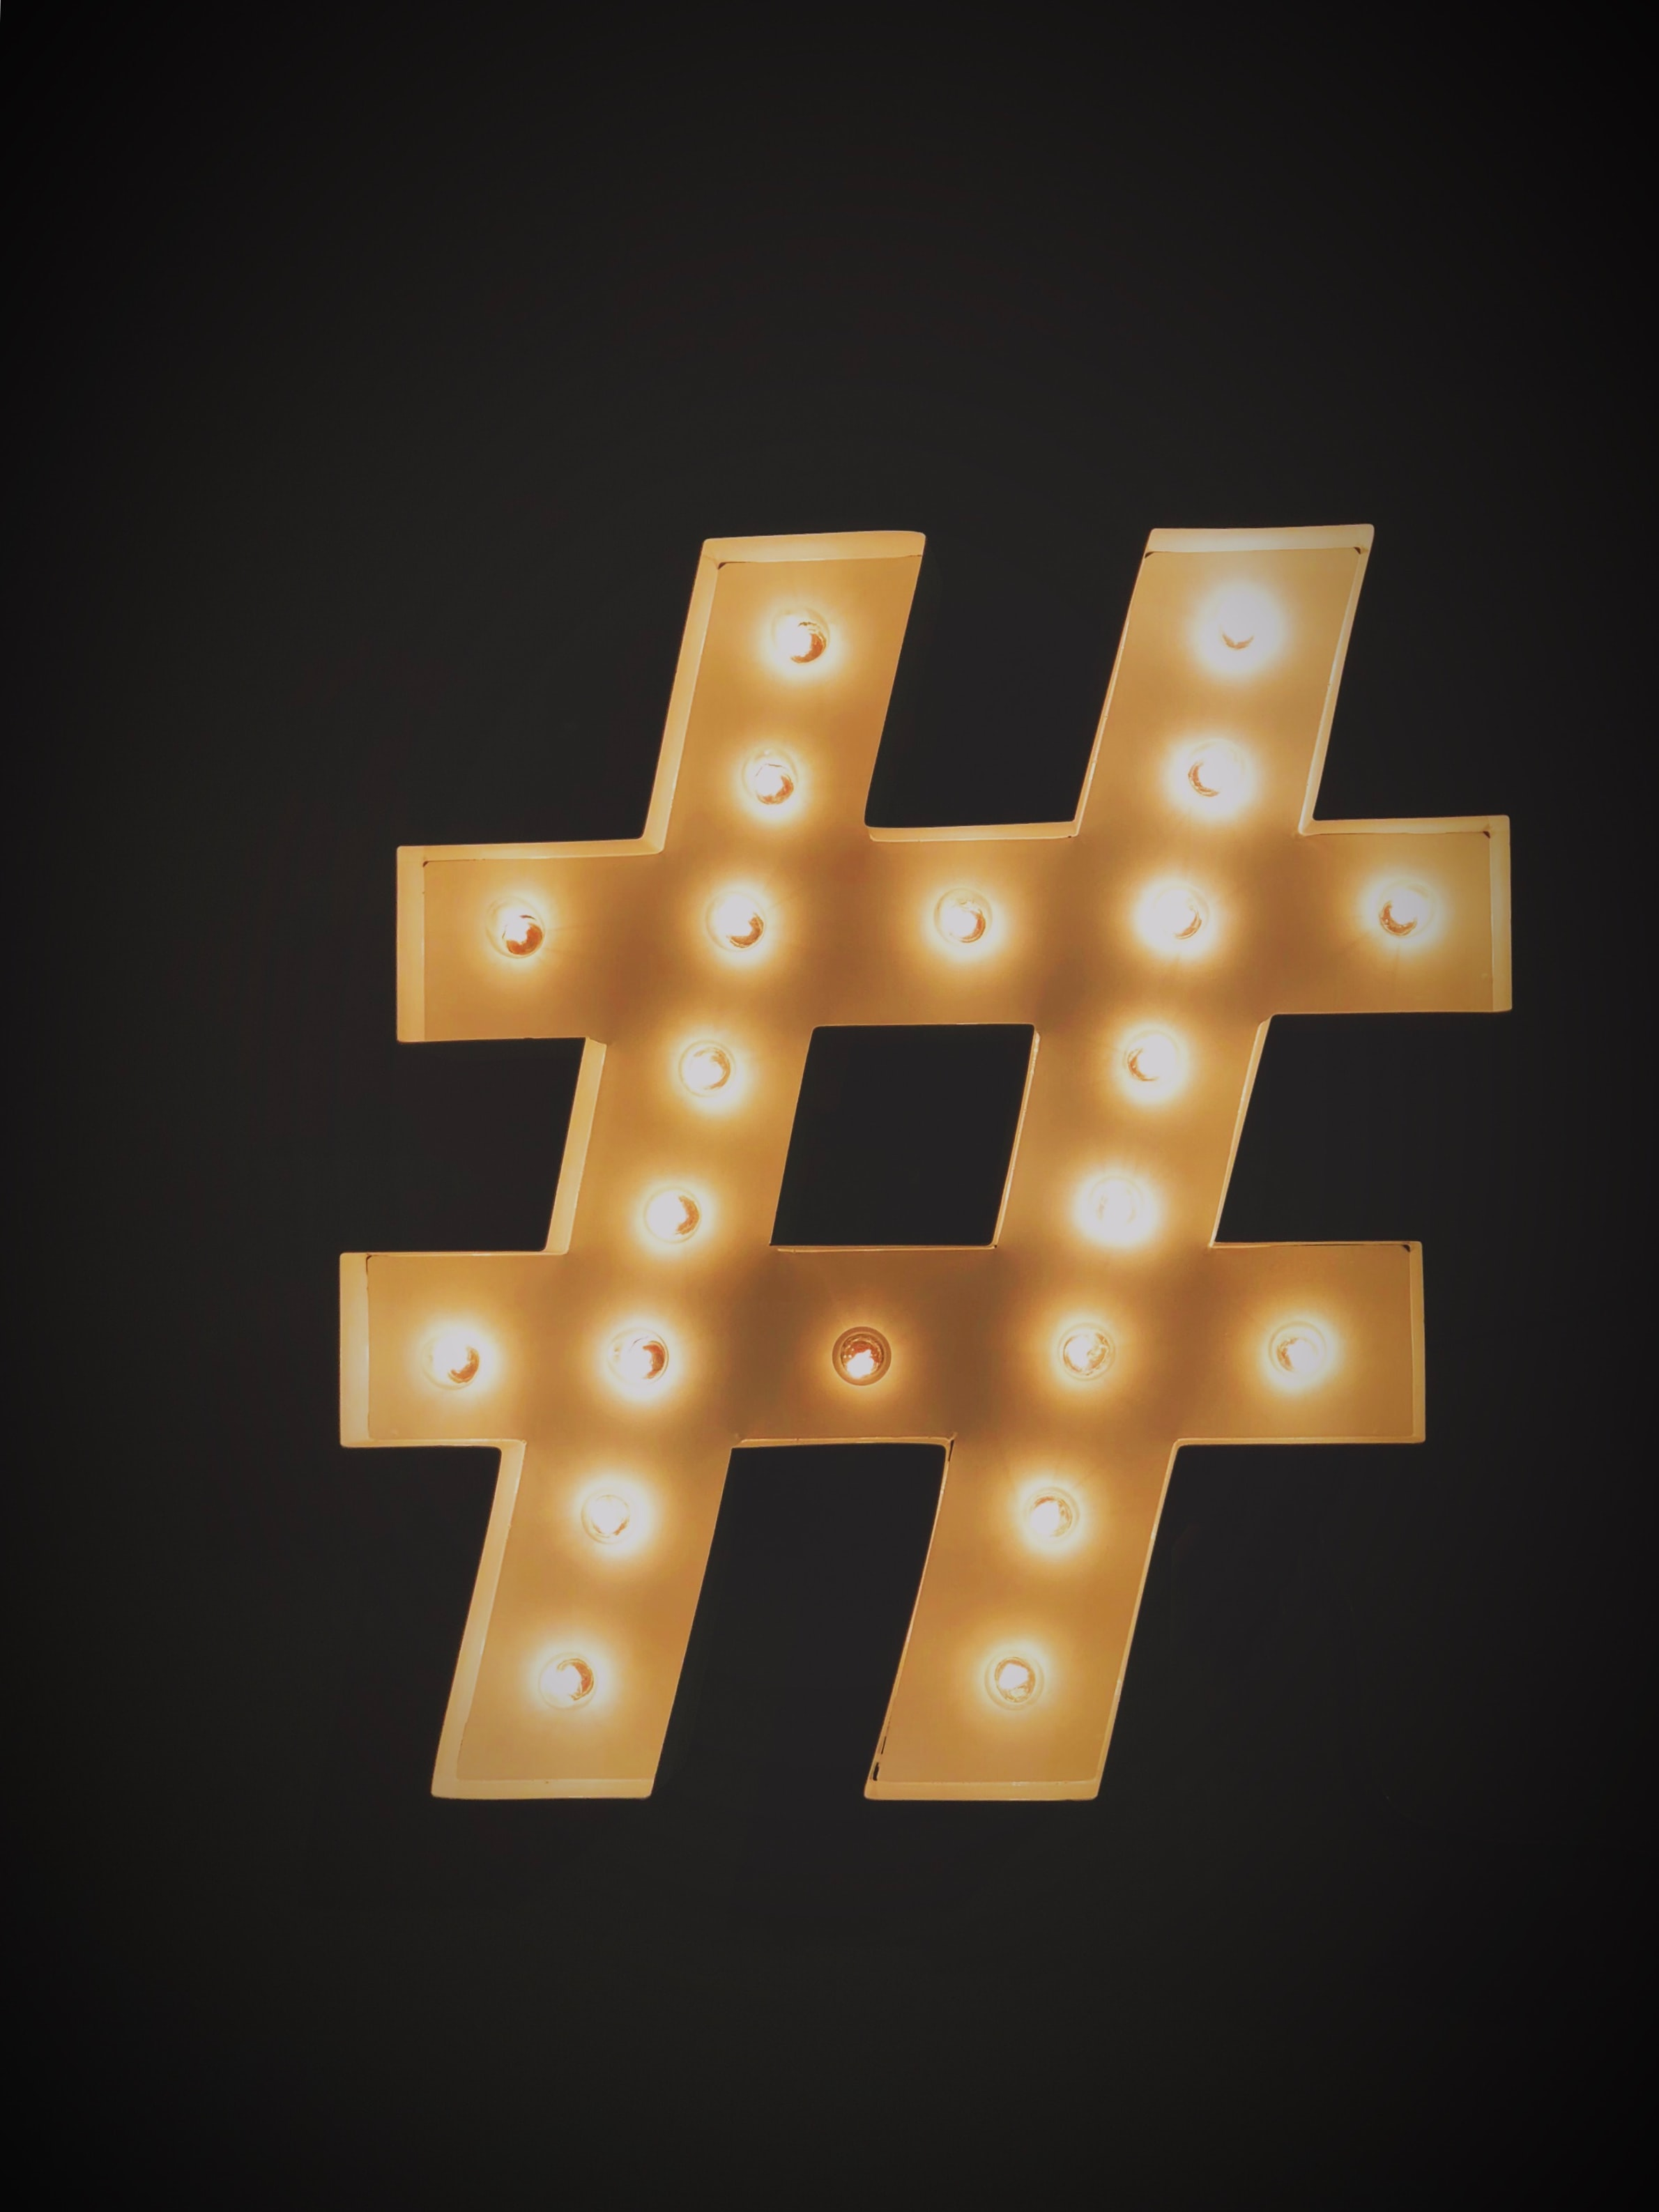 hashtag in lights